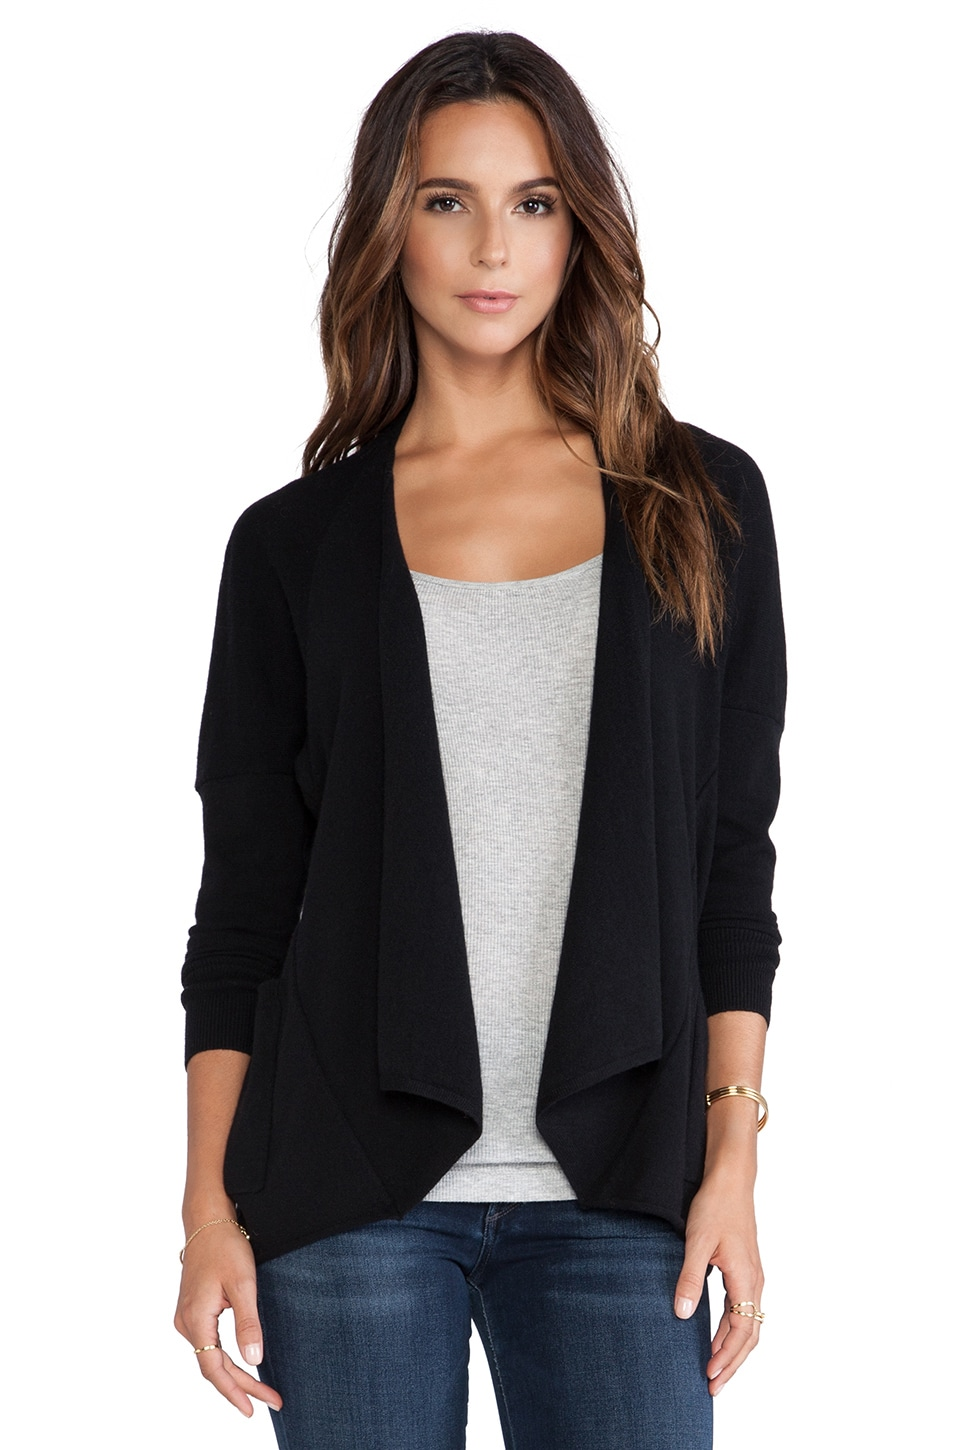 Autumn Cashmere Drape with Pocket Sweater in Black